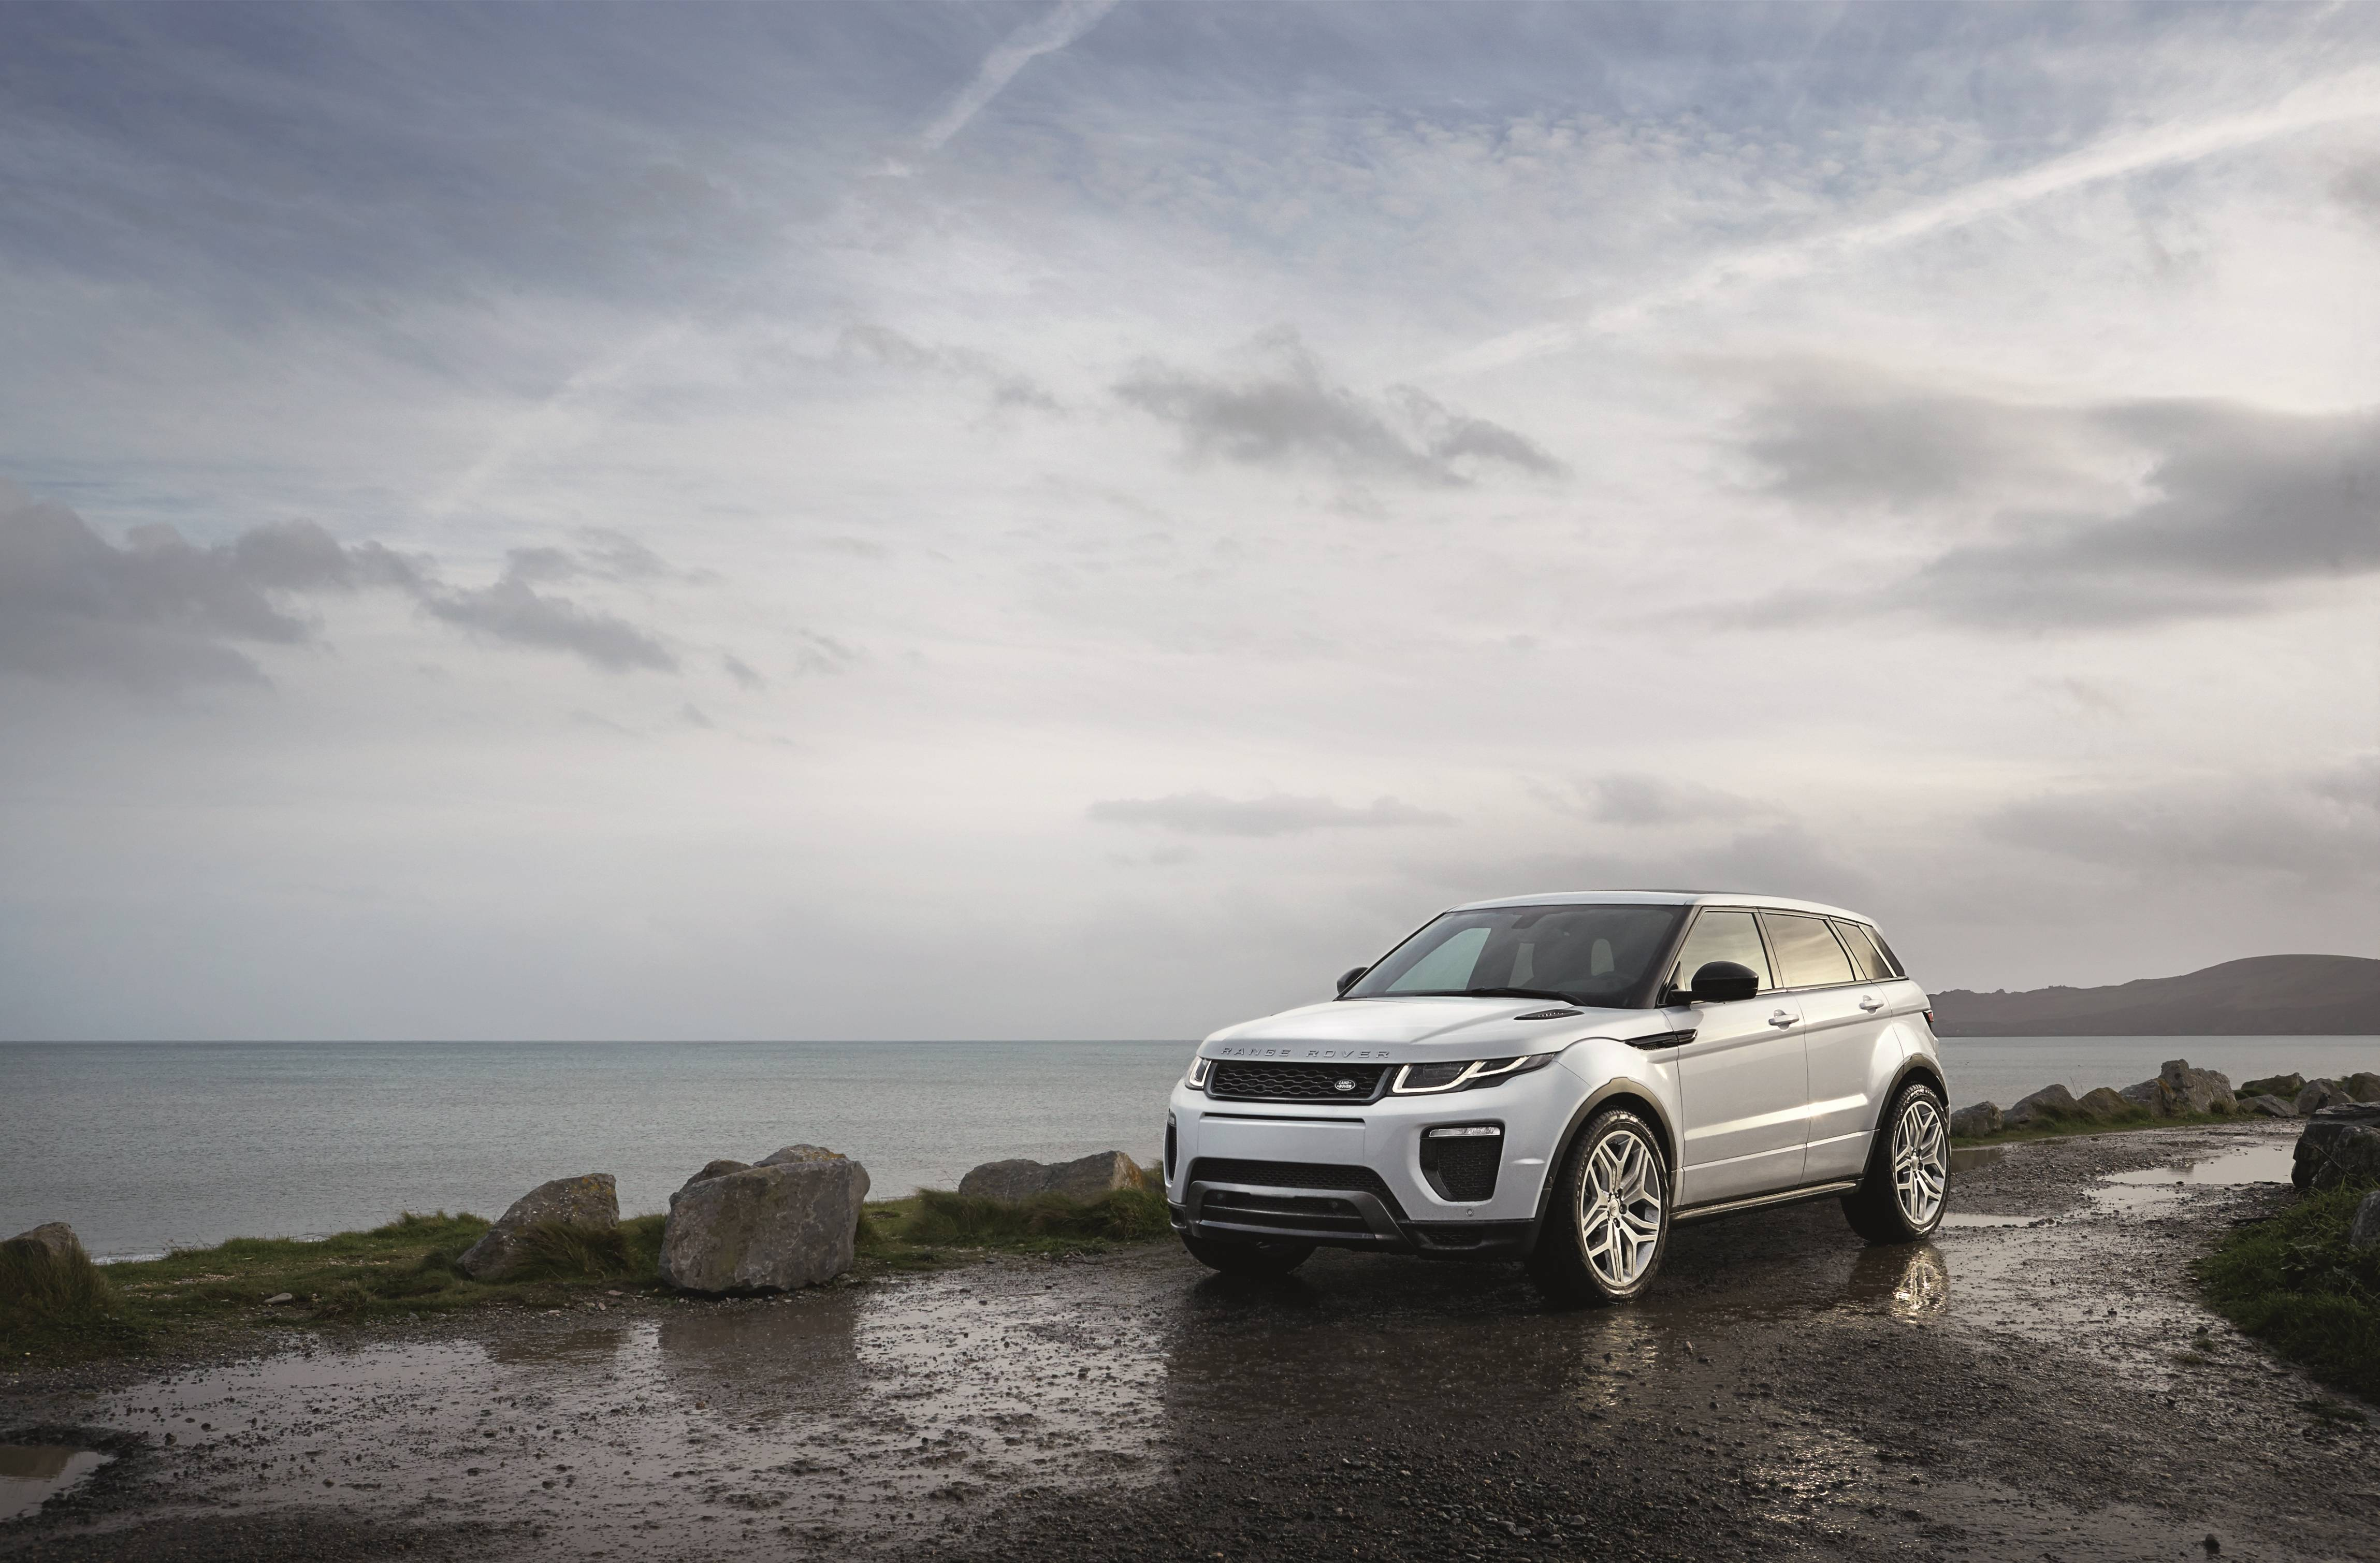 Road Tripping Just Got Better With the 2016 Range Rover Evoque